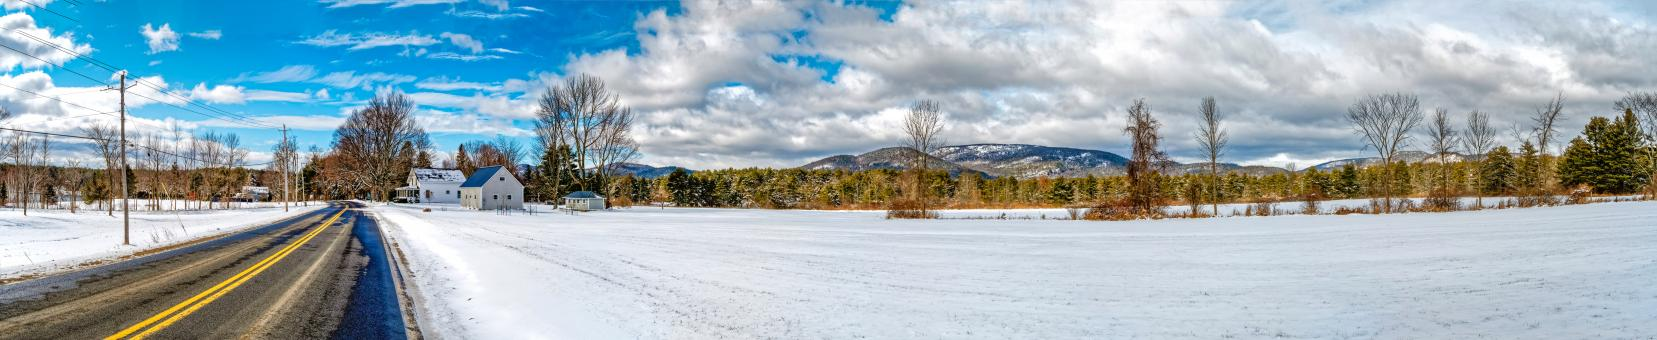 Free Stock Photo of Winter Landscape - Panorama